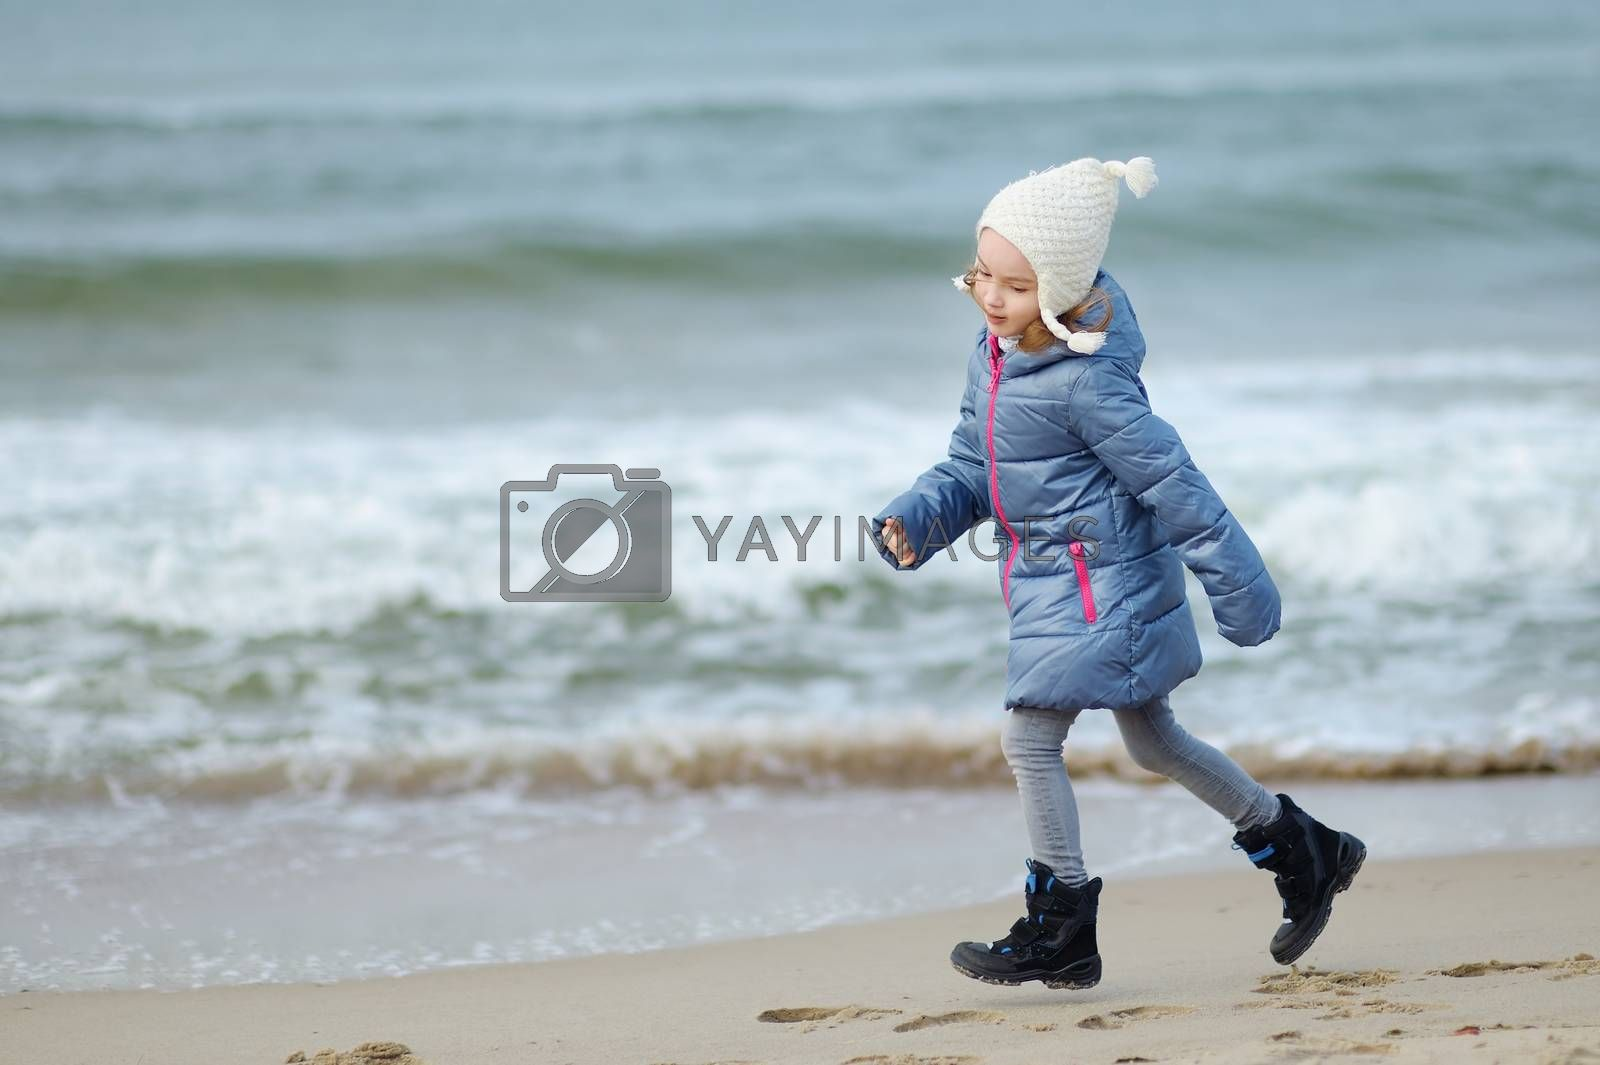 Adorable little girl playing by the ocean by maximkabb